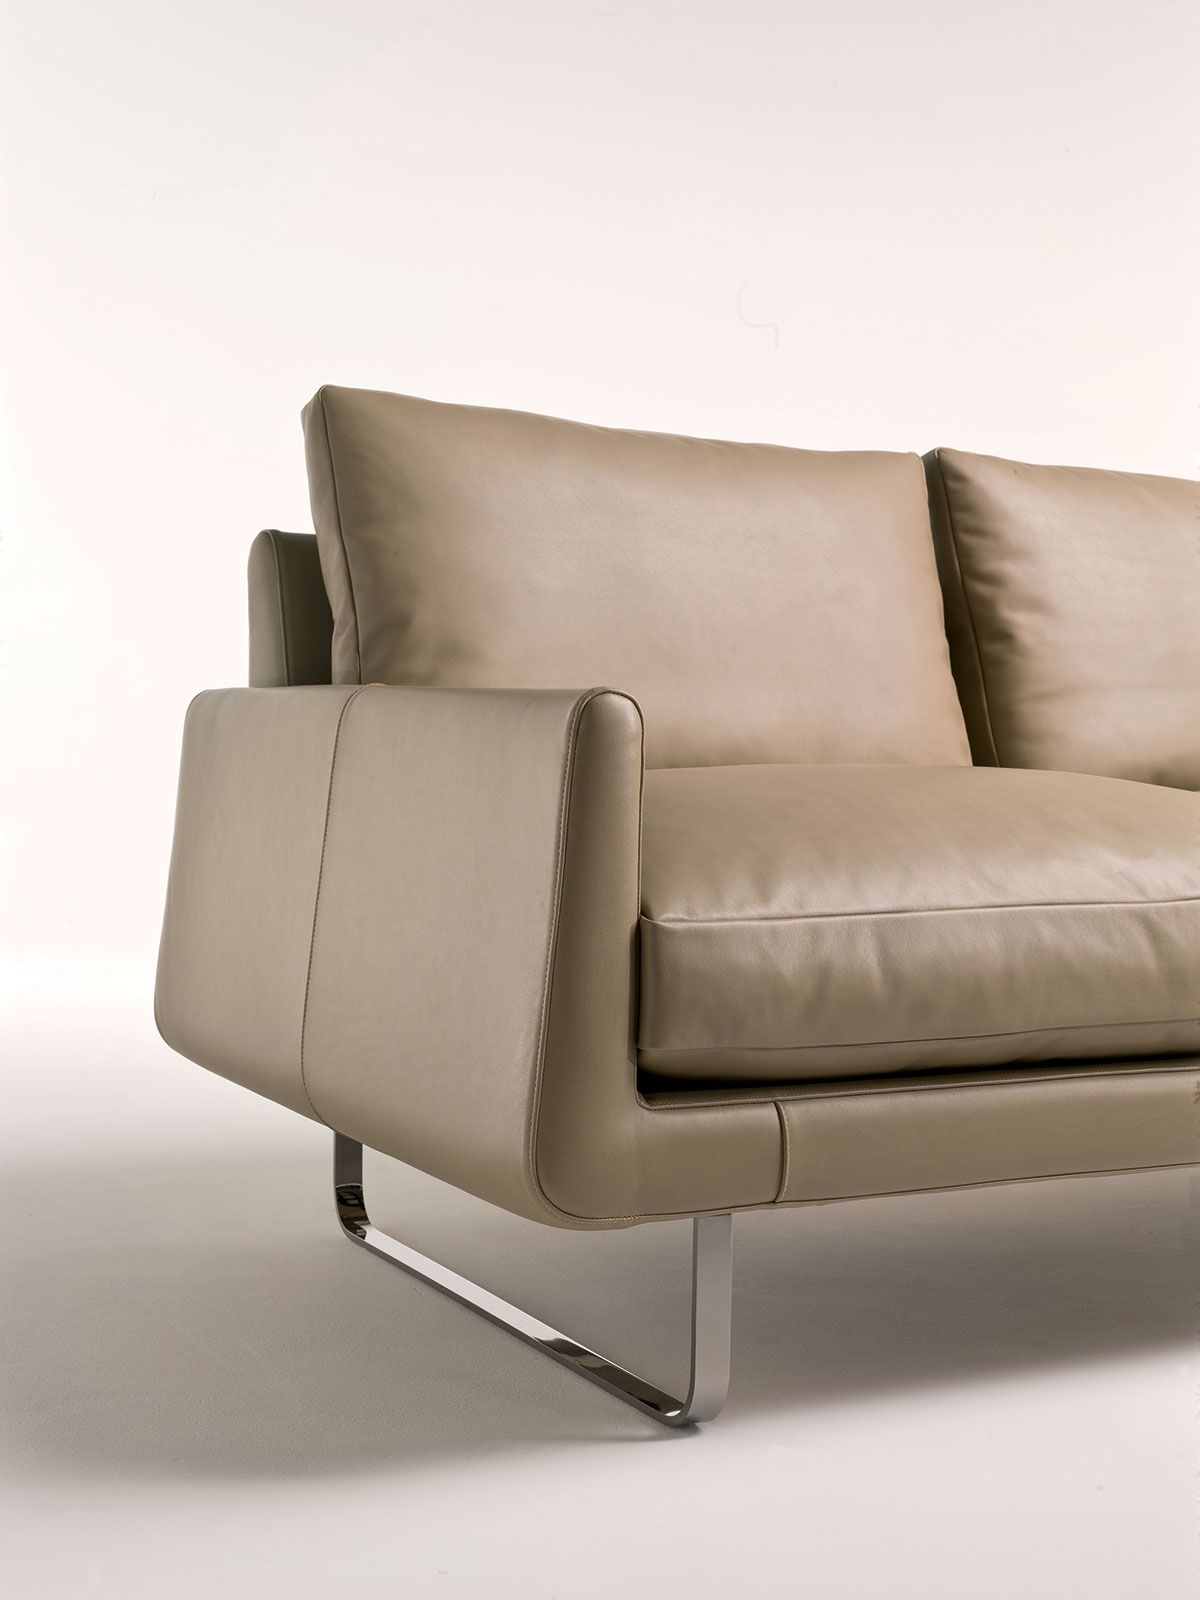 Amazing Joshua 4 Seater Sofa Italy Dream Design New Website Nov Uwap Interior Chair Design Uwaporg